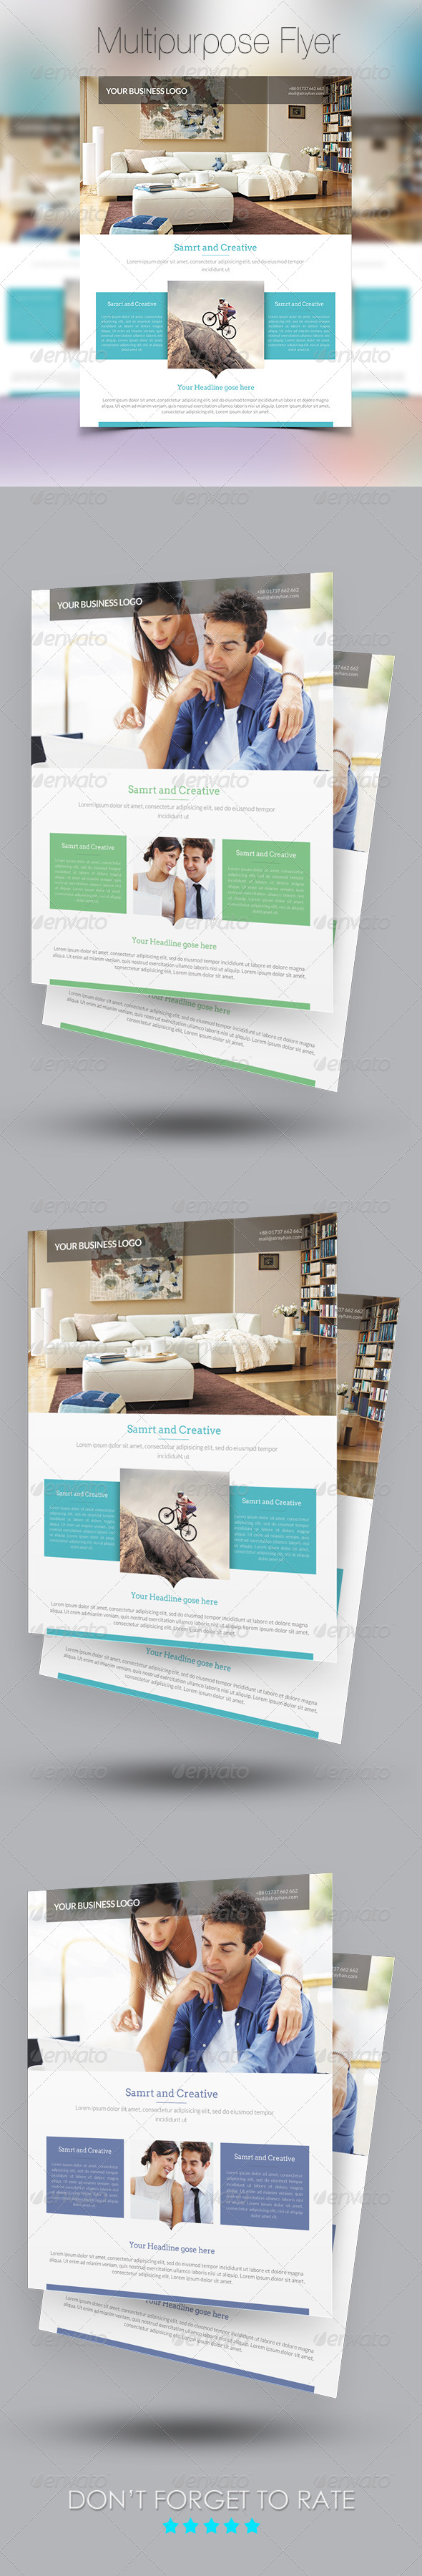 GraphicRiver Multipurpose Busienss Flyer Template 7731651